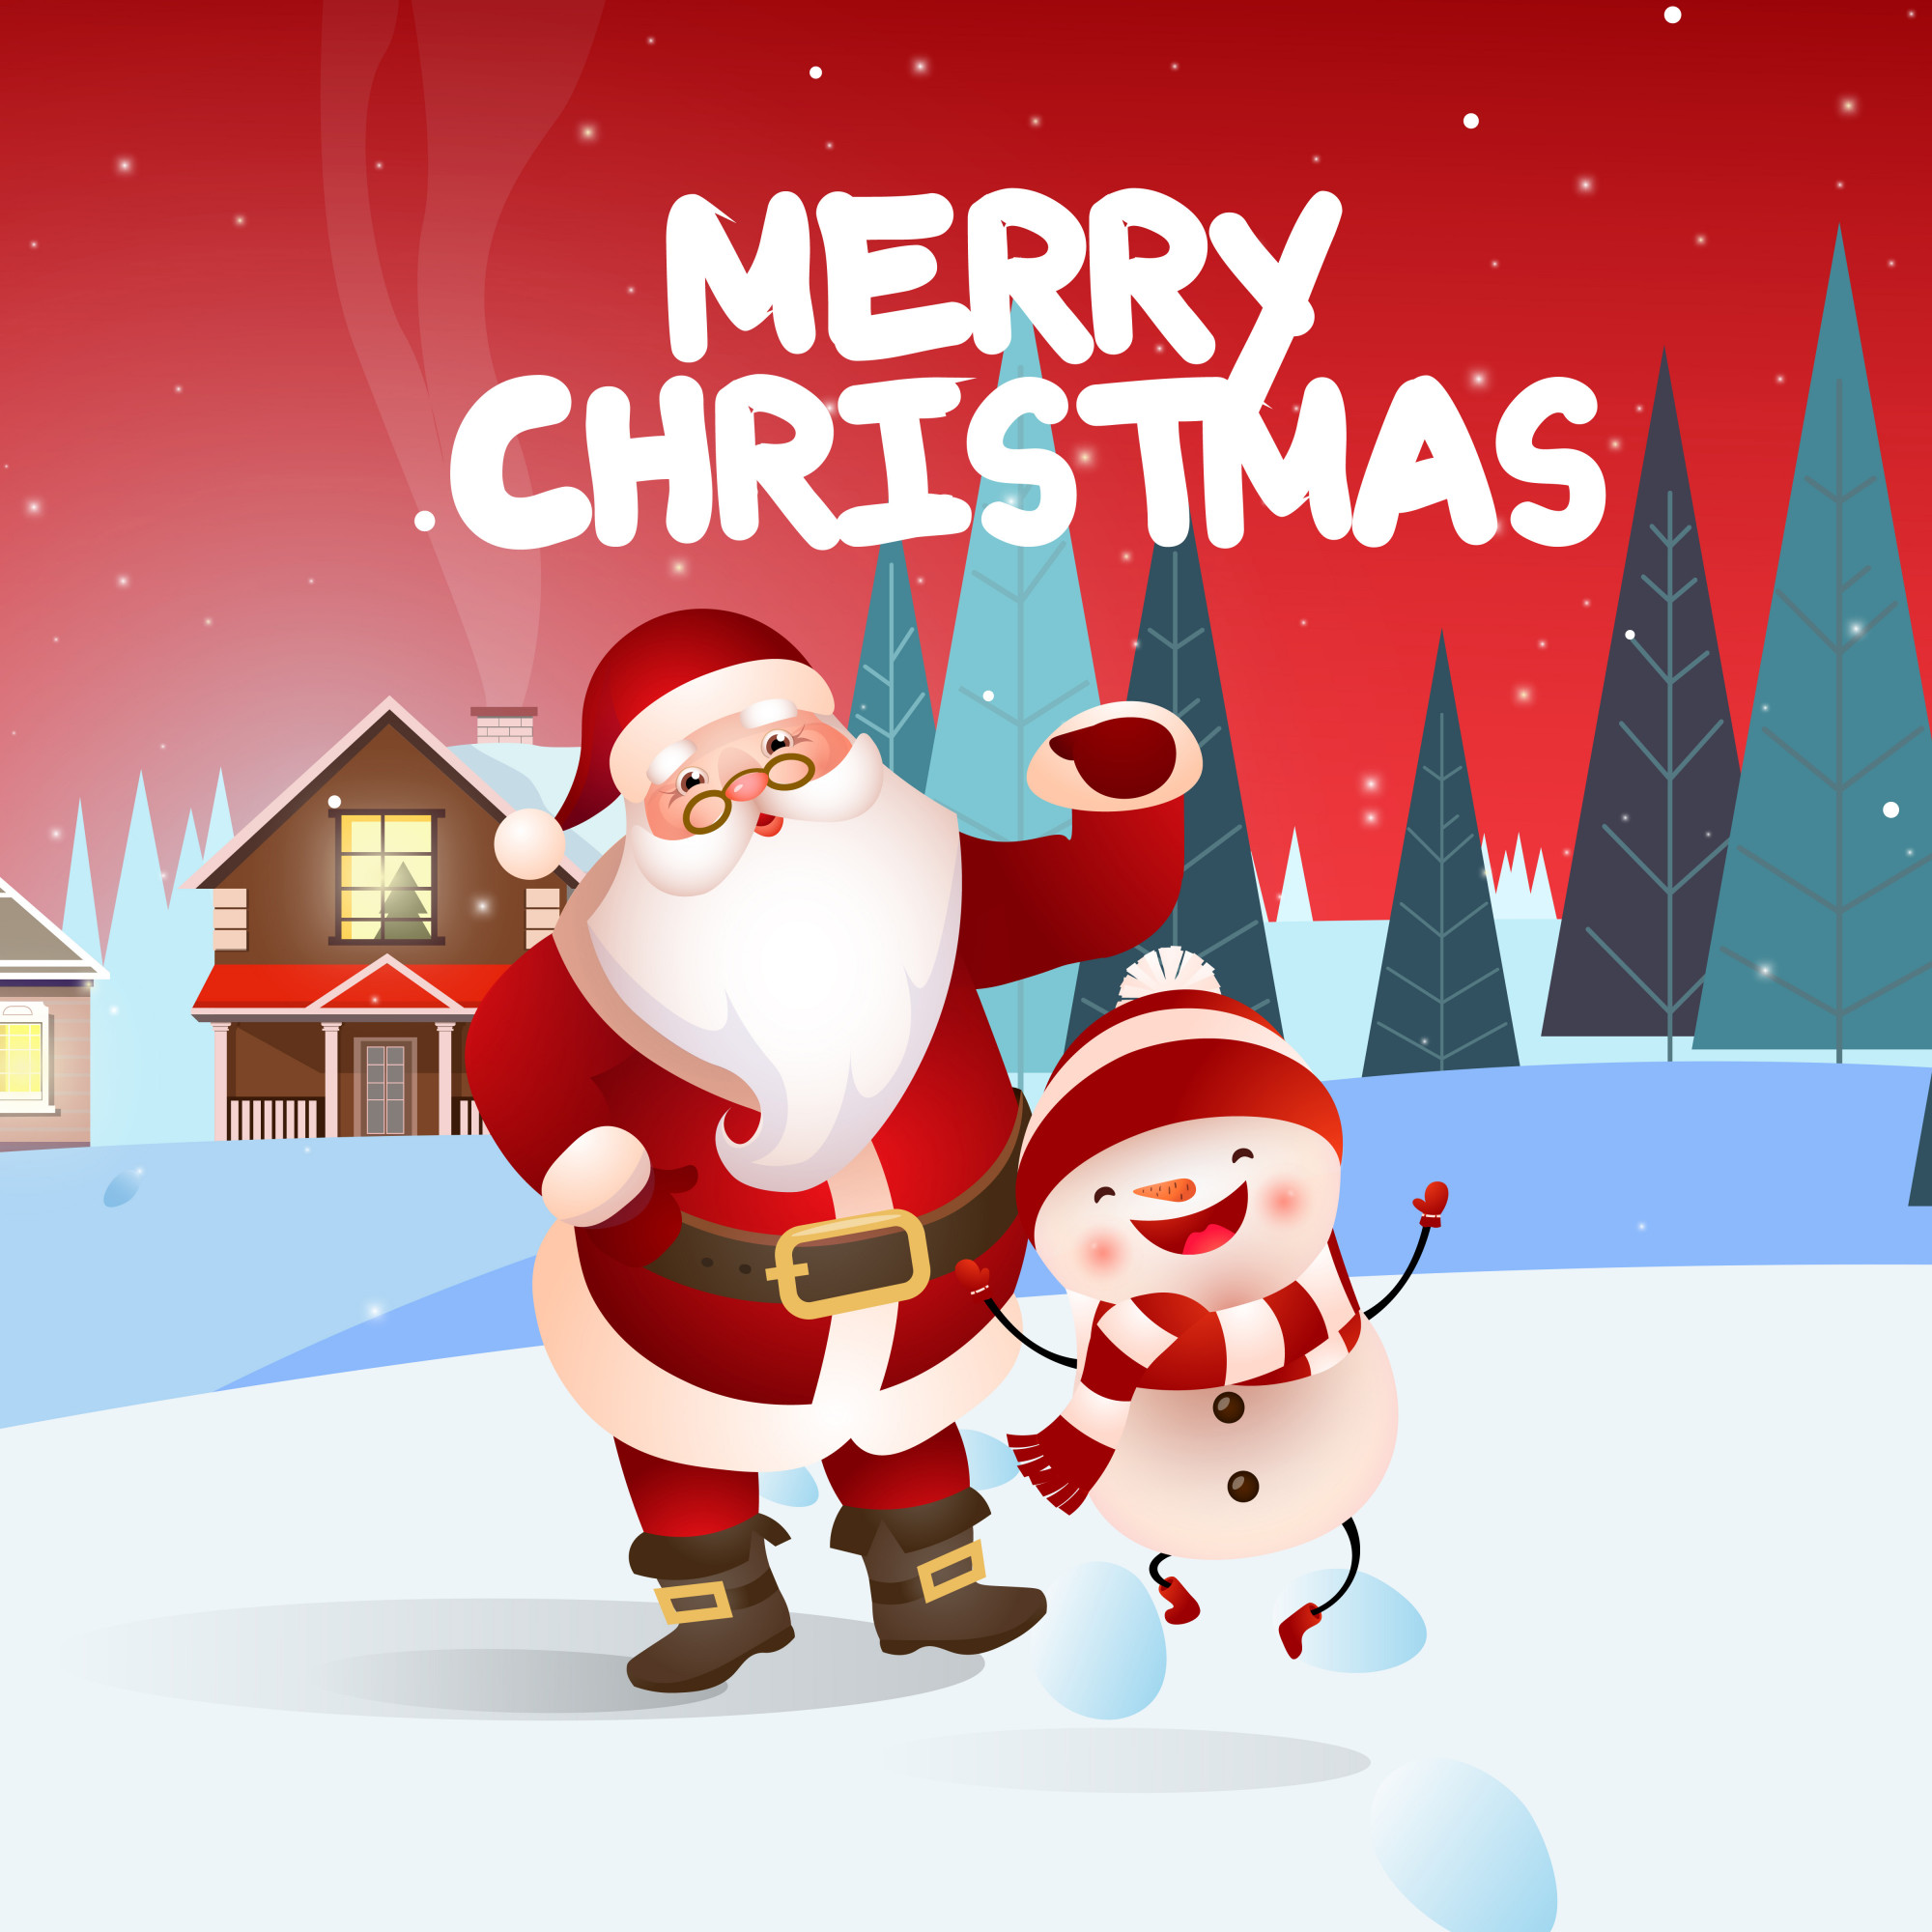 Merry Christmas festive banner design with Santa and snowman